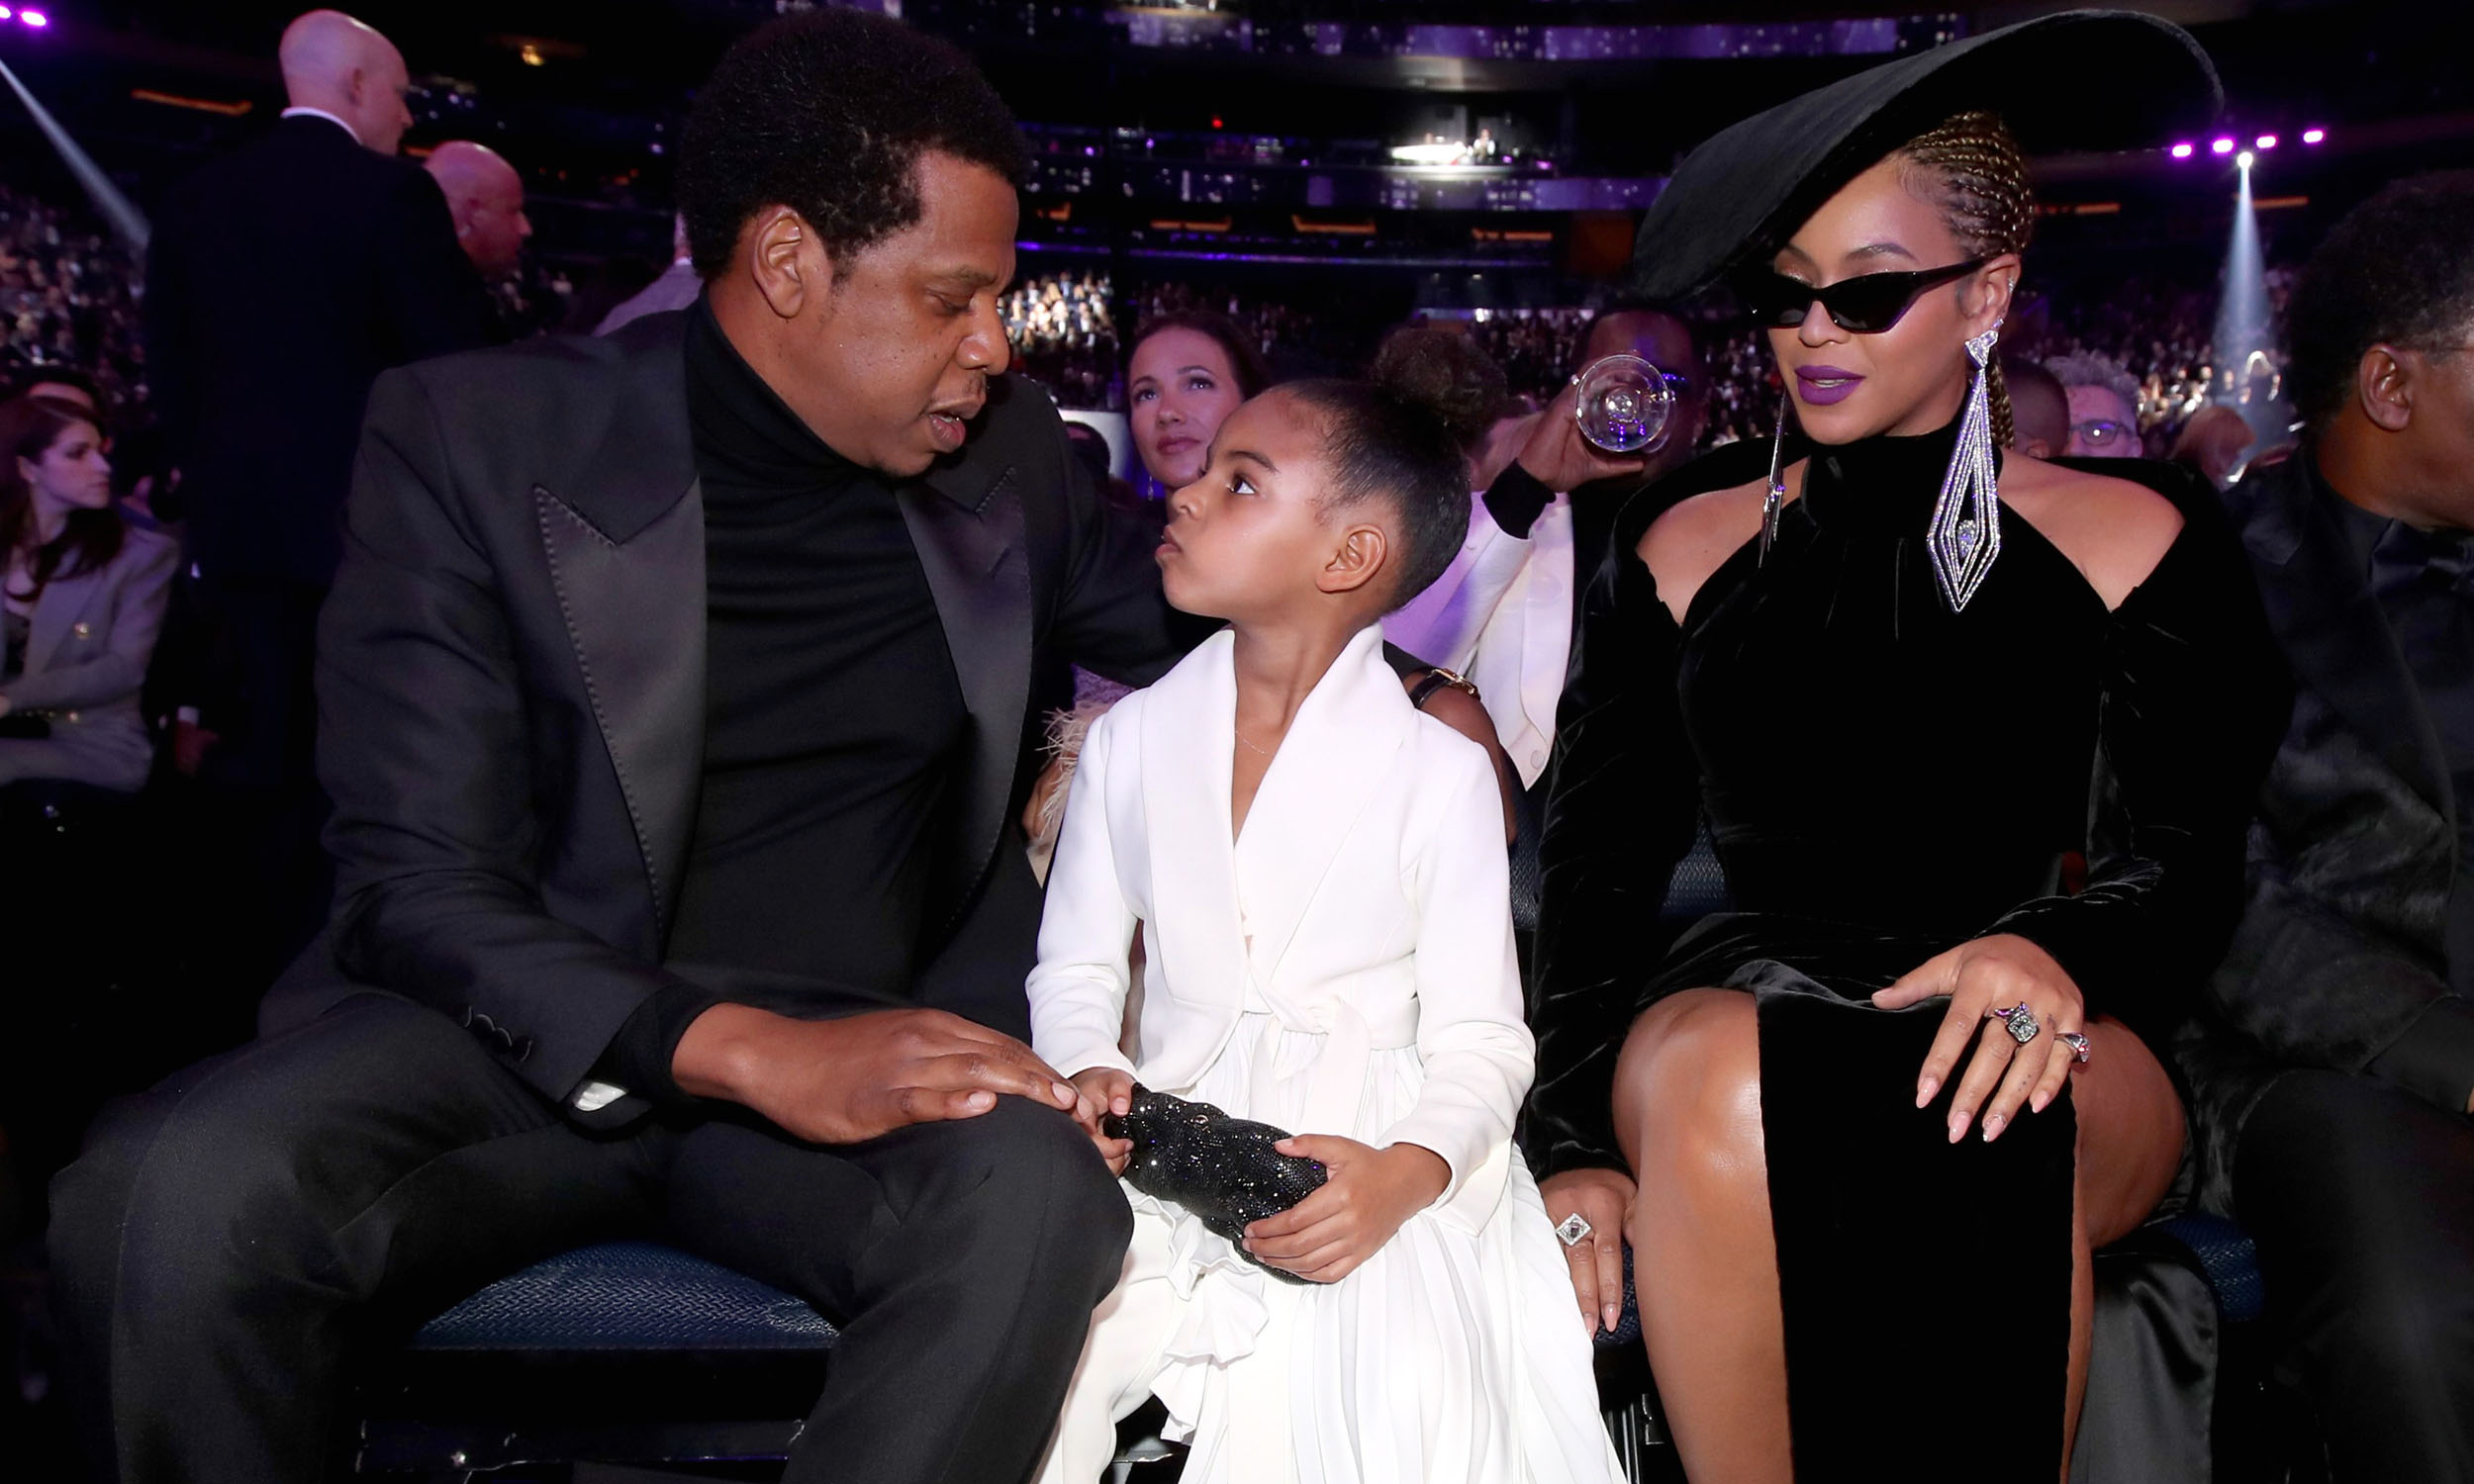 Jay Z, Blue Ivy and Beyonce at the 2018 Grammy Awards. Best Dressed (Most Stylish) Men on the Red Carpet. Grammys 2018: The Best Dressed Men.